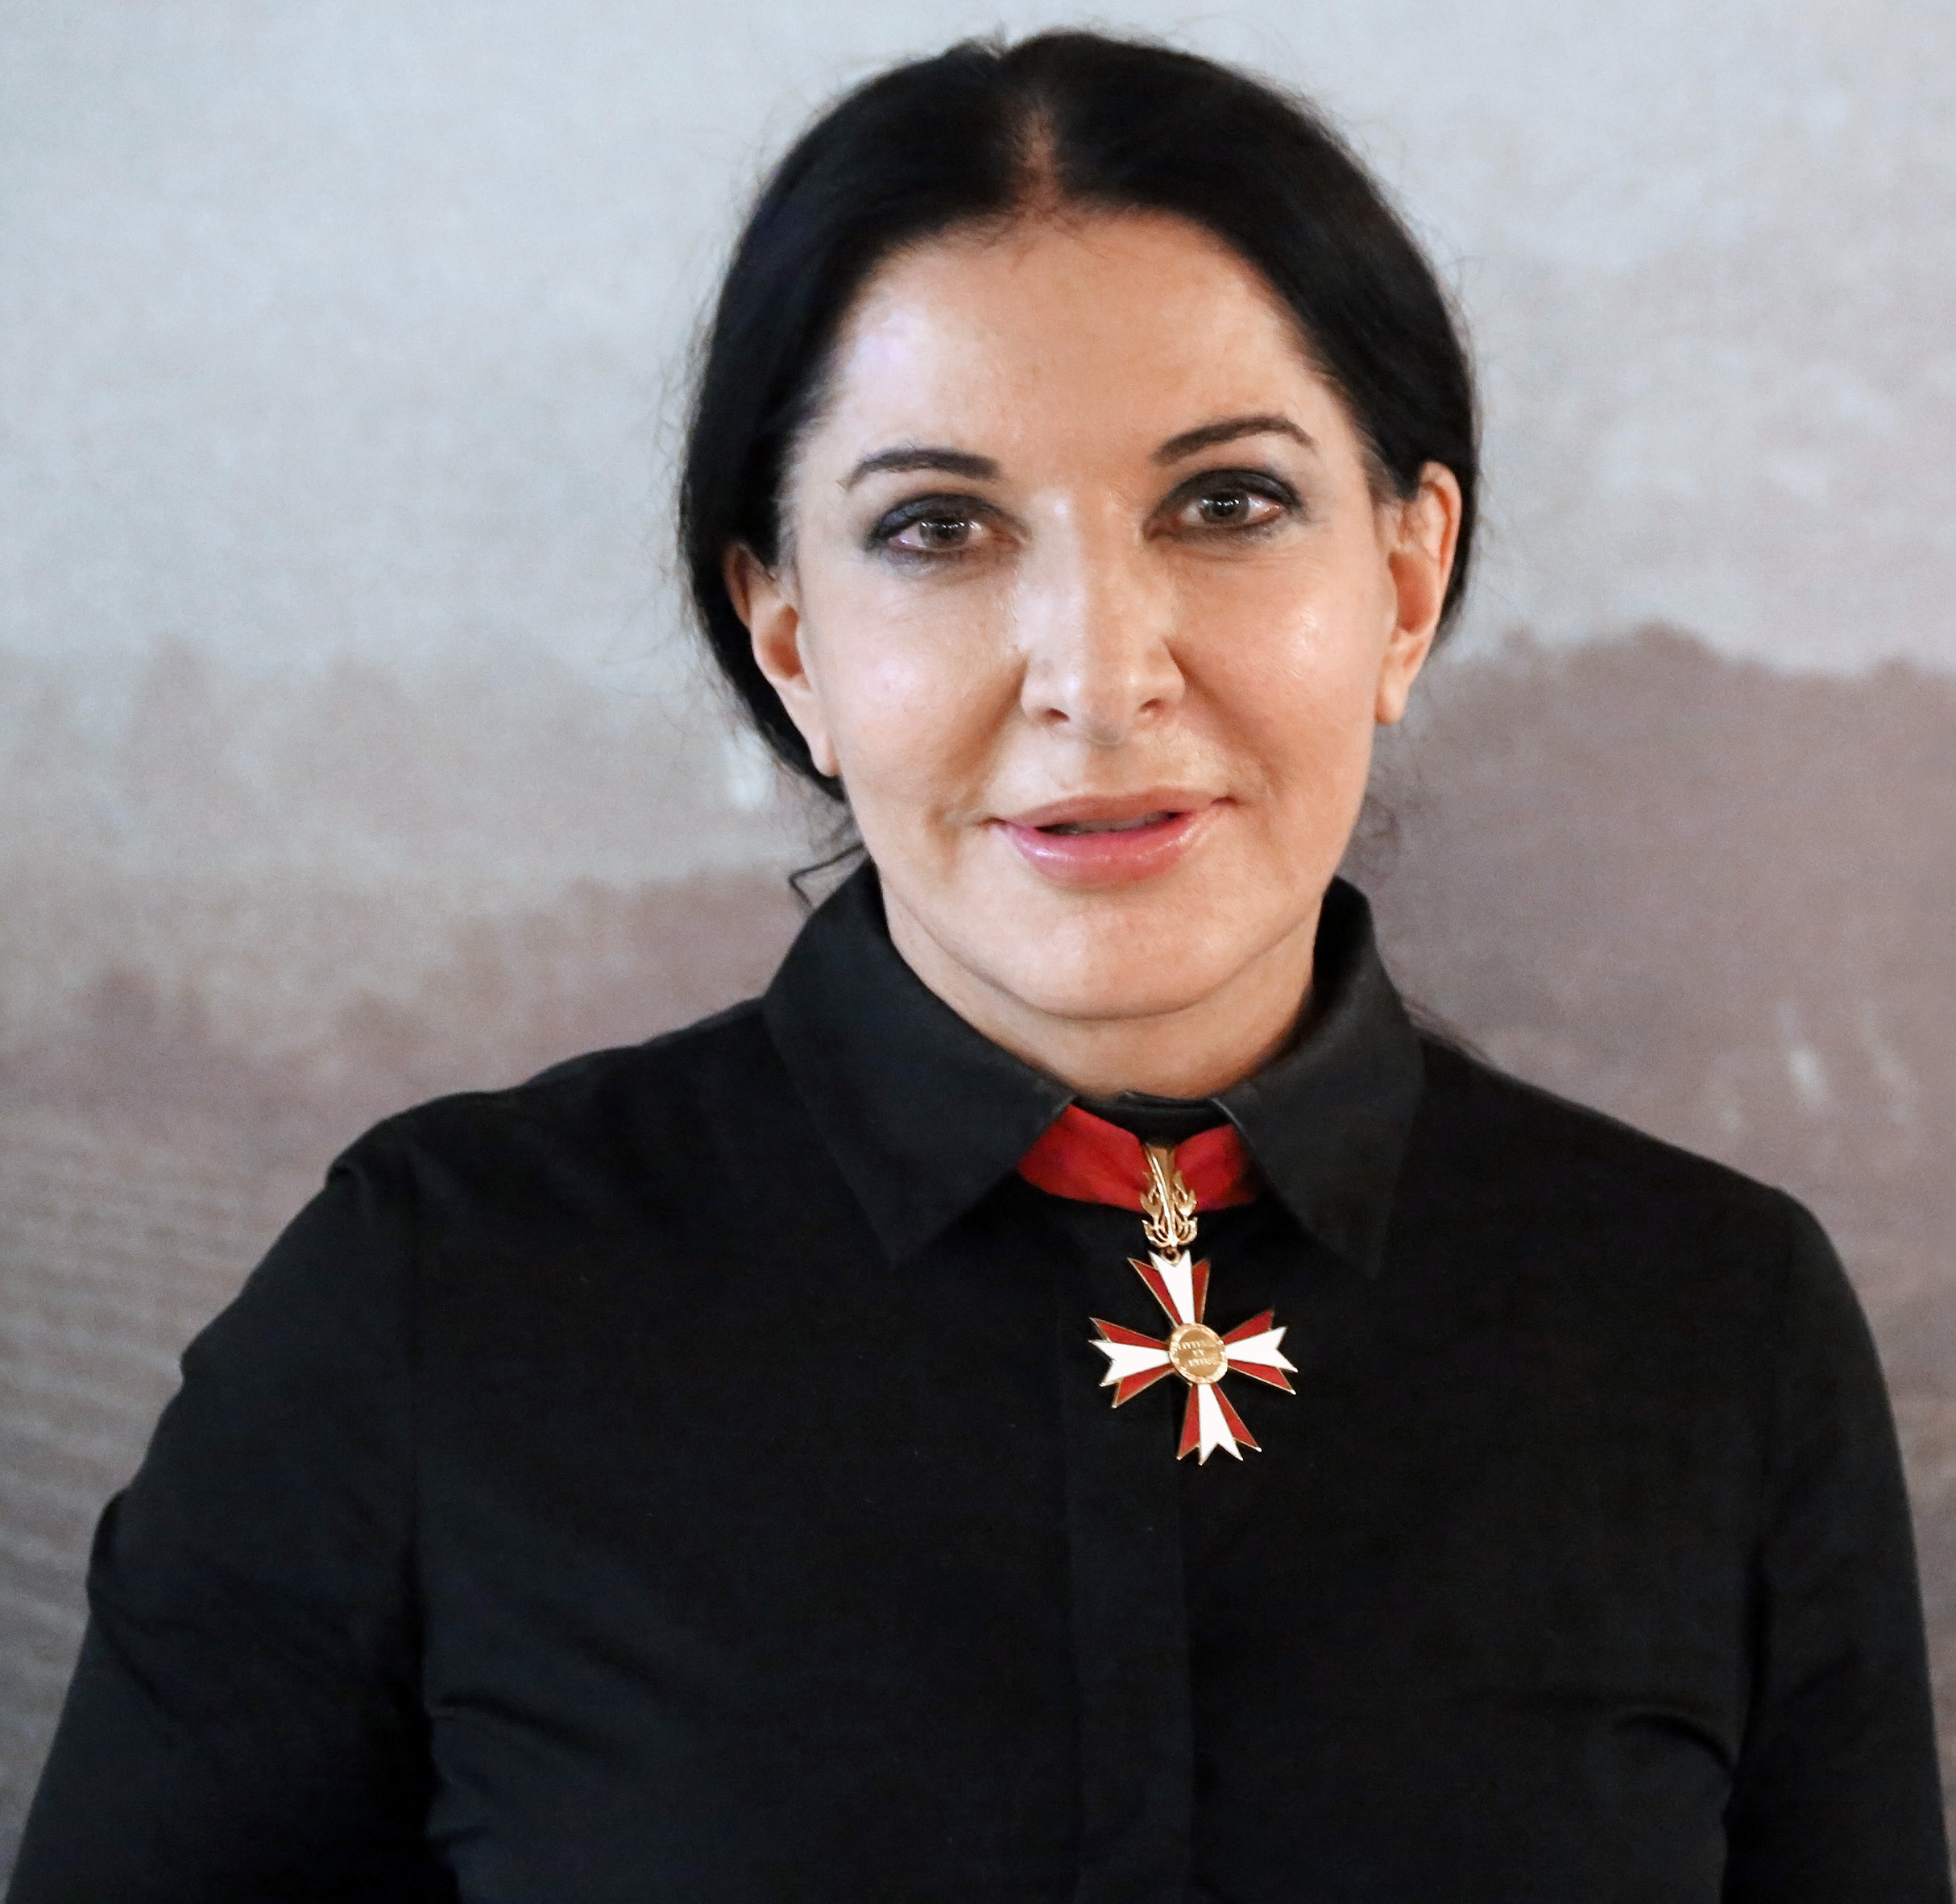 The 71-year old daughter of father Vojo Abramović and mother Danica Abramović Marina Abramovic in 2018 photo. Marina Abramovic earned a  million dollar salary - leaving the net worth at 10 million in 2018